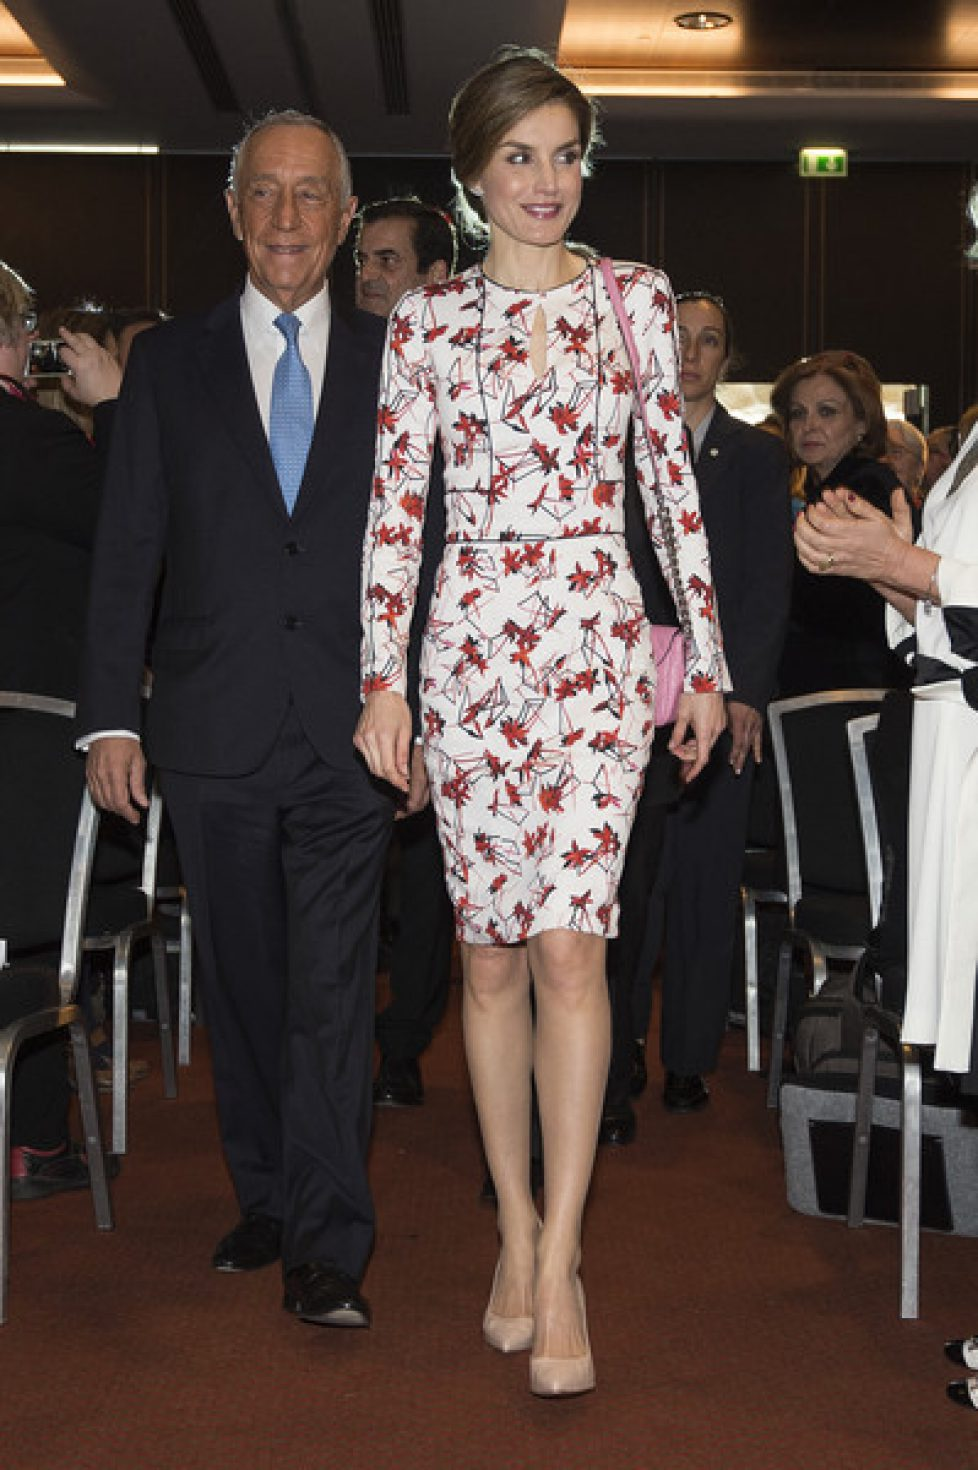 Queen+Letizia+Spain+Attends+Forum+Against+N8rFNWsUpxwl